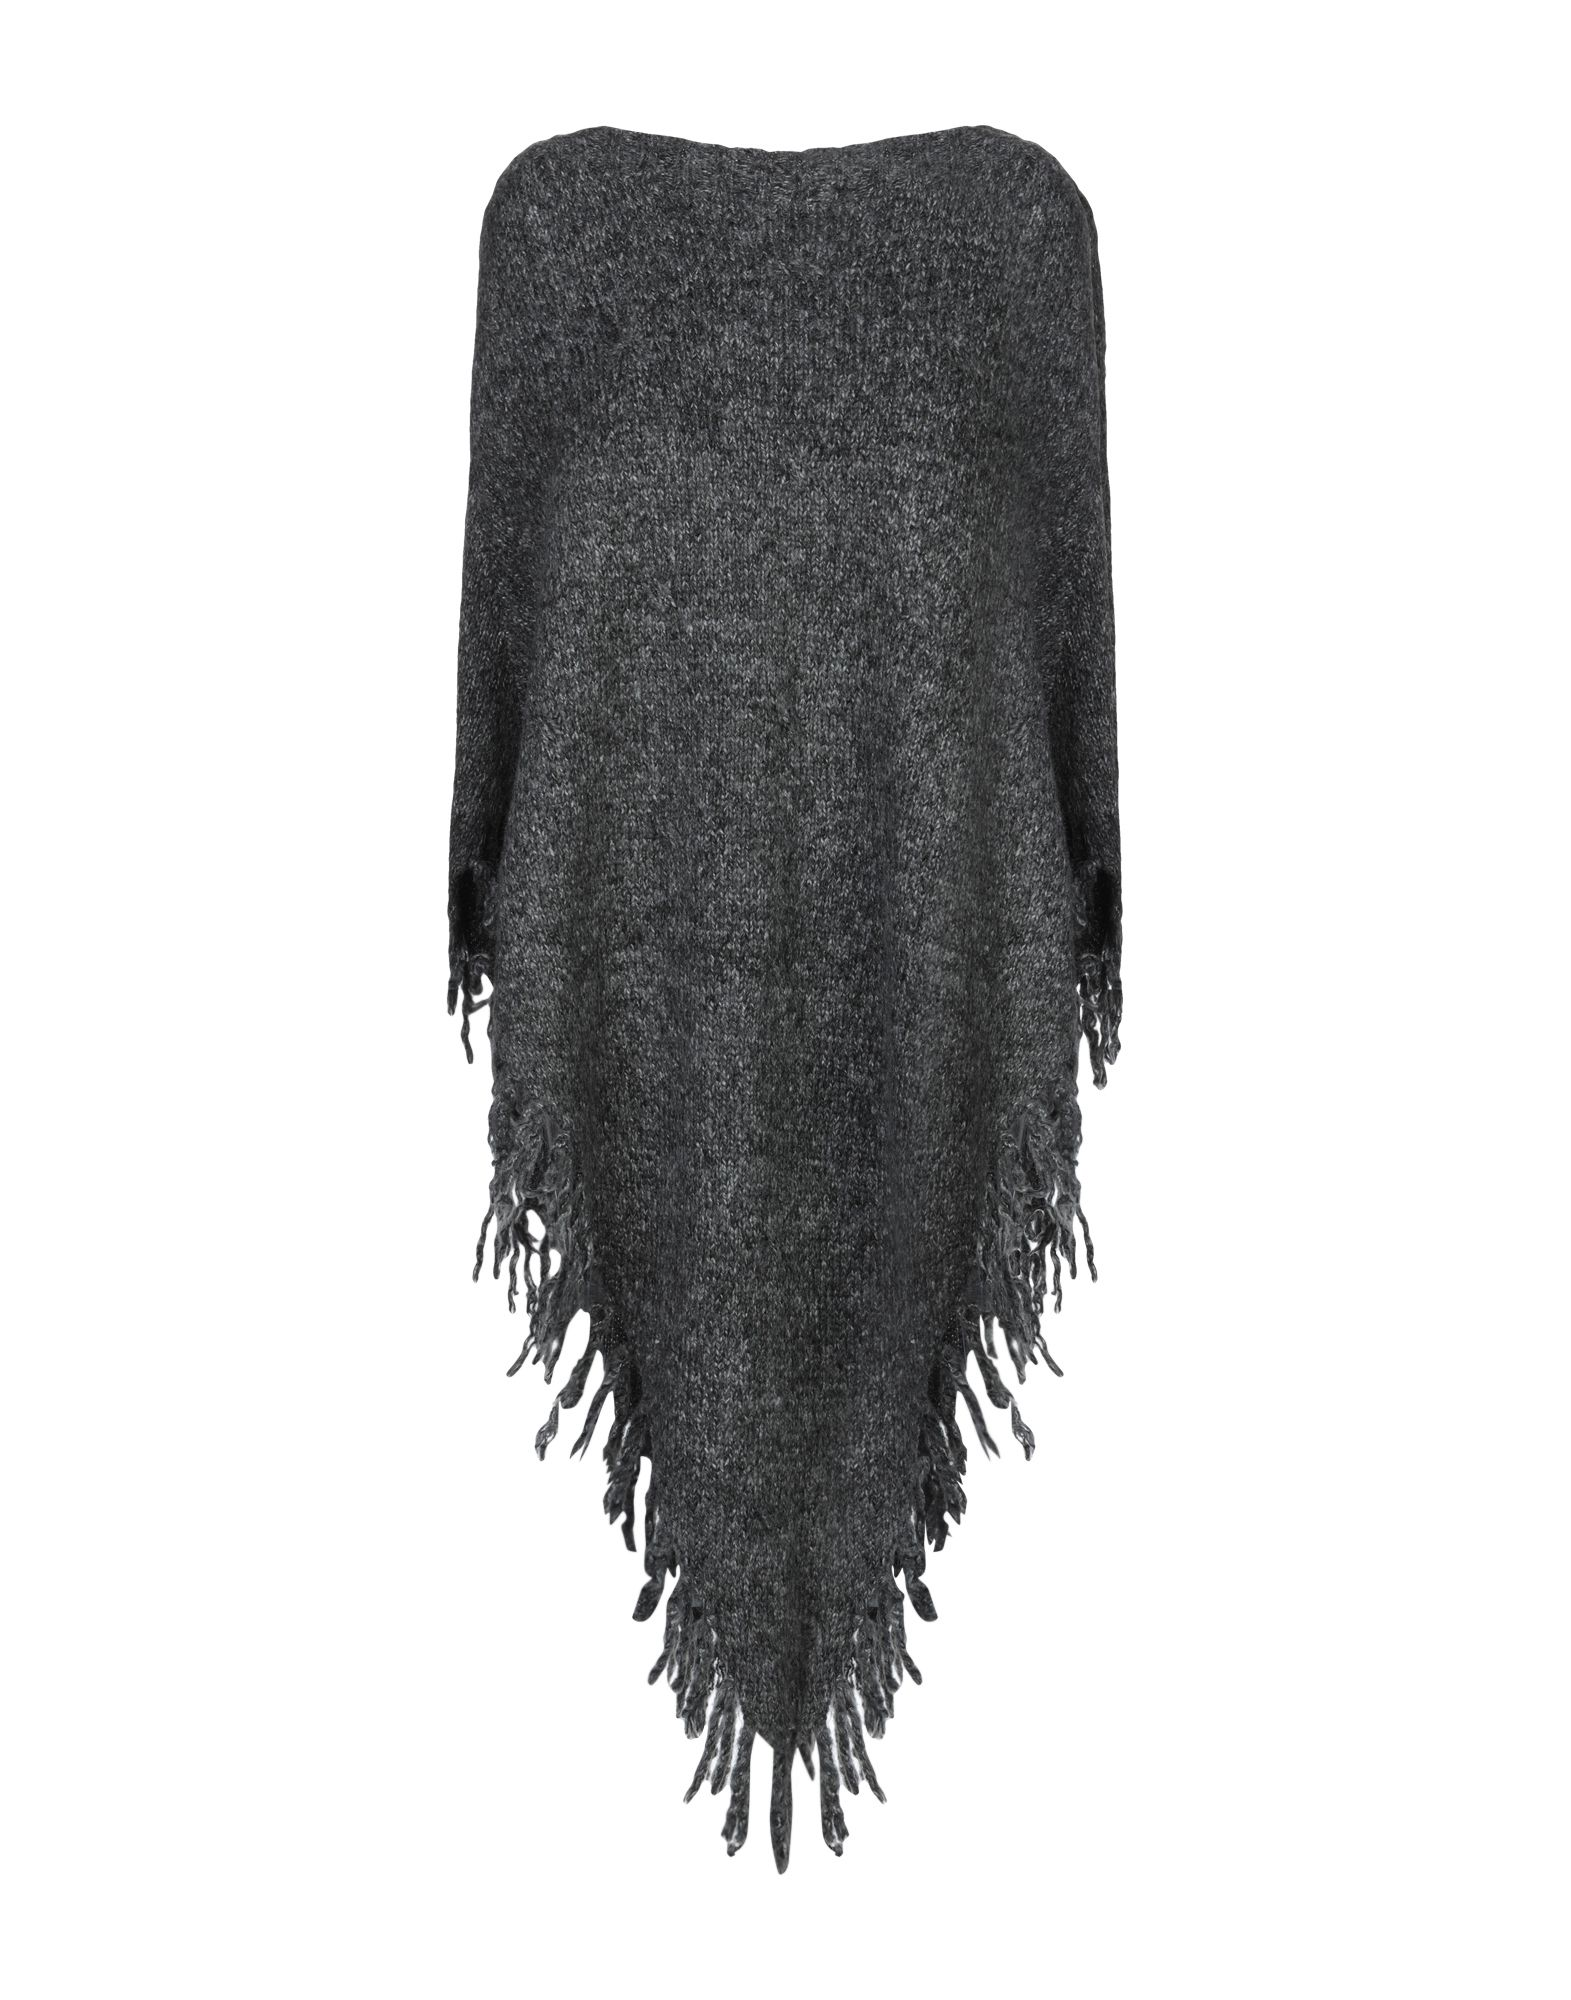 emily fullerton wraps, capes & ponchos scarves for women - Buy best